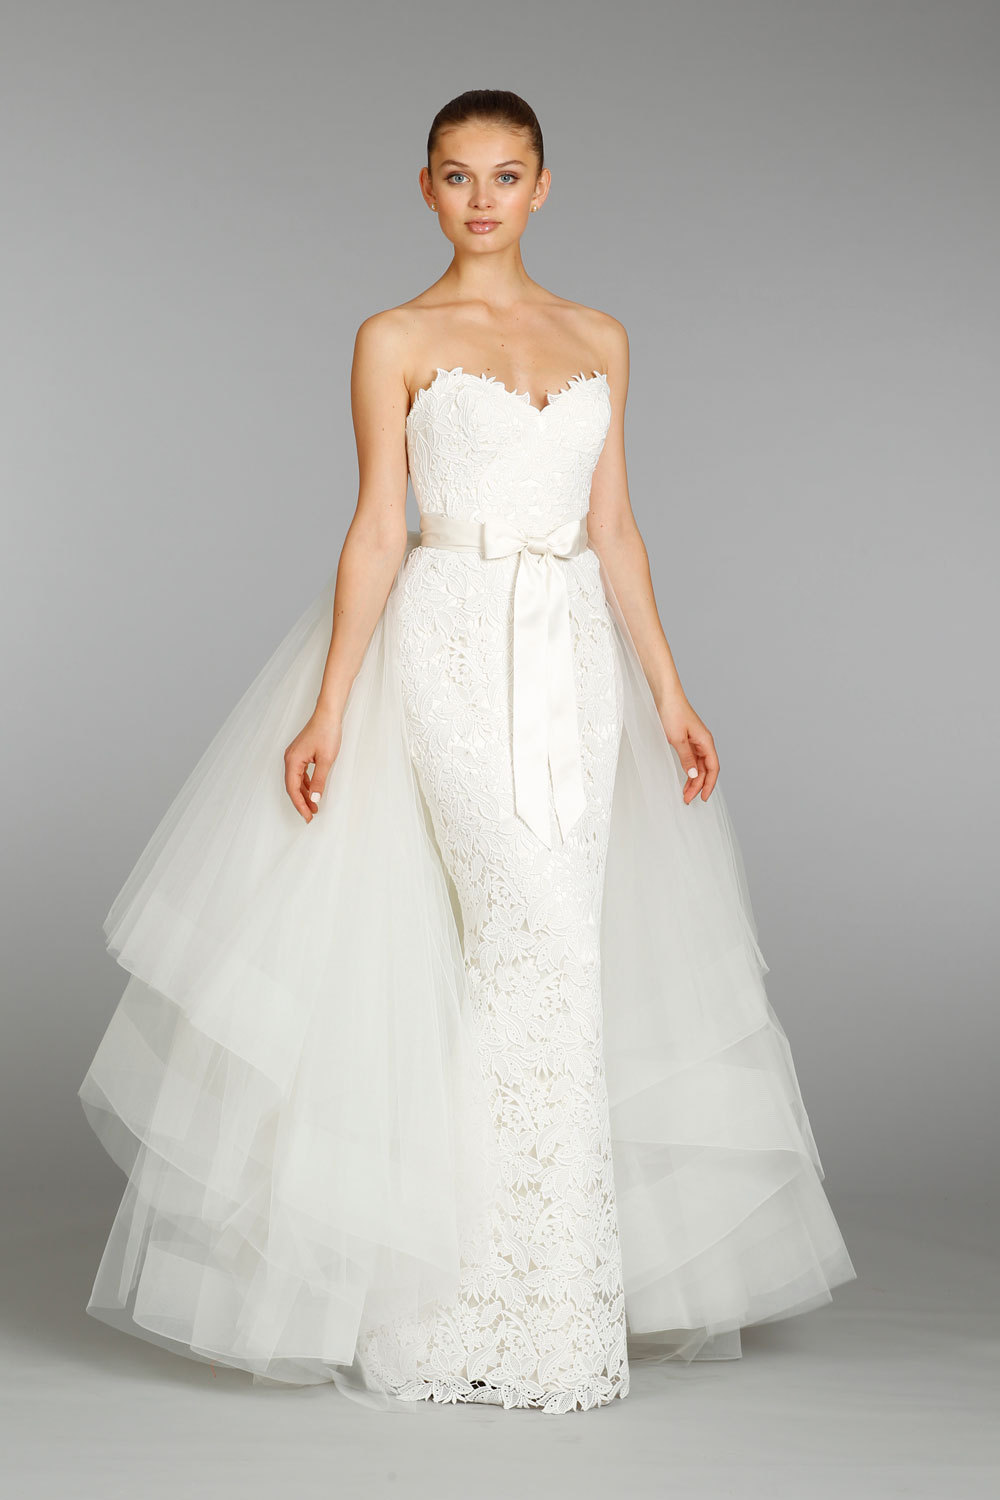 Lazaro-wedding-dress-fall-2013-bridal-3357.full